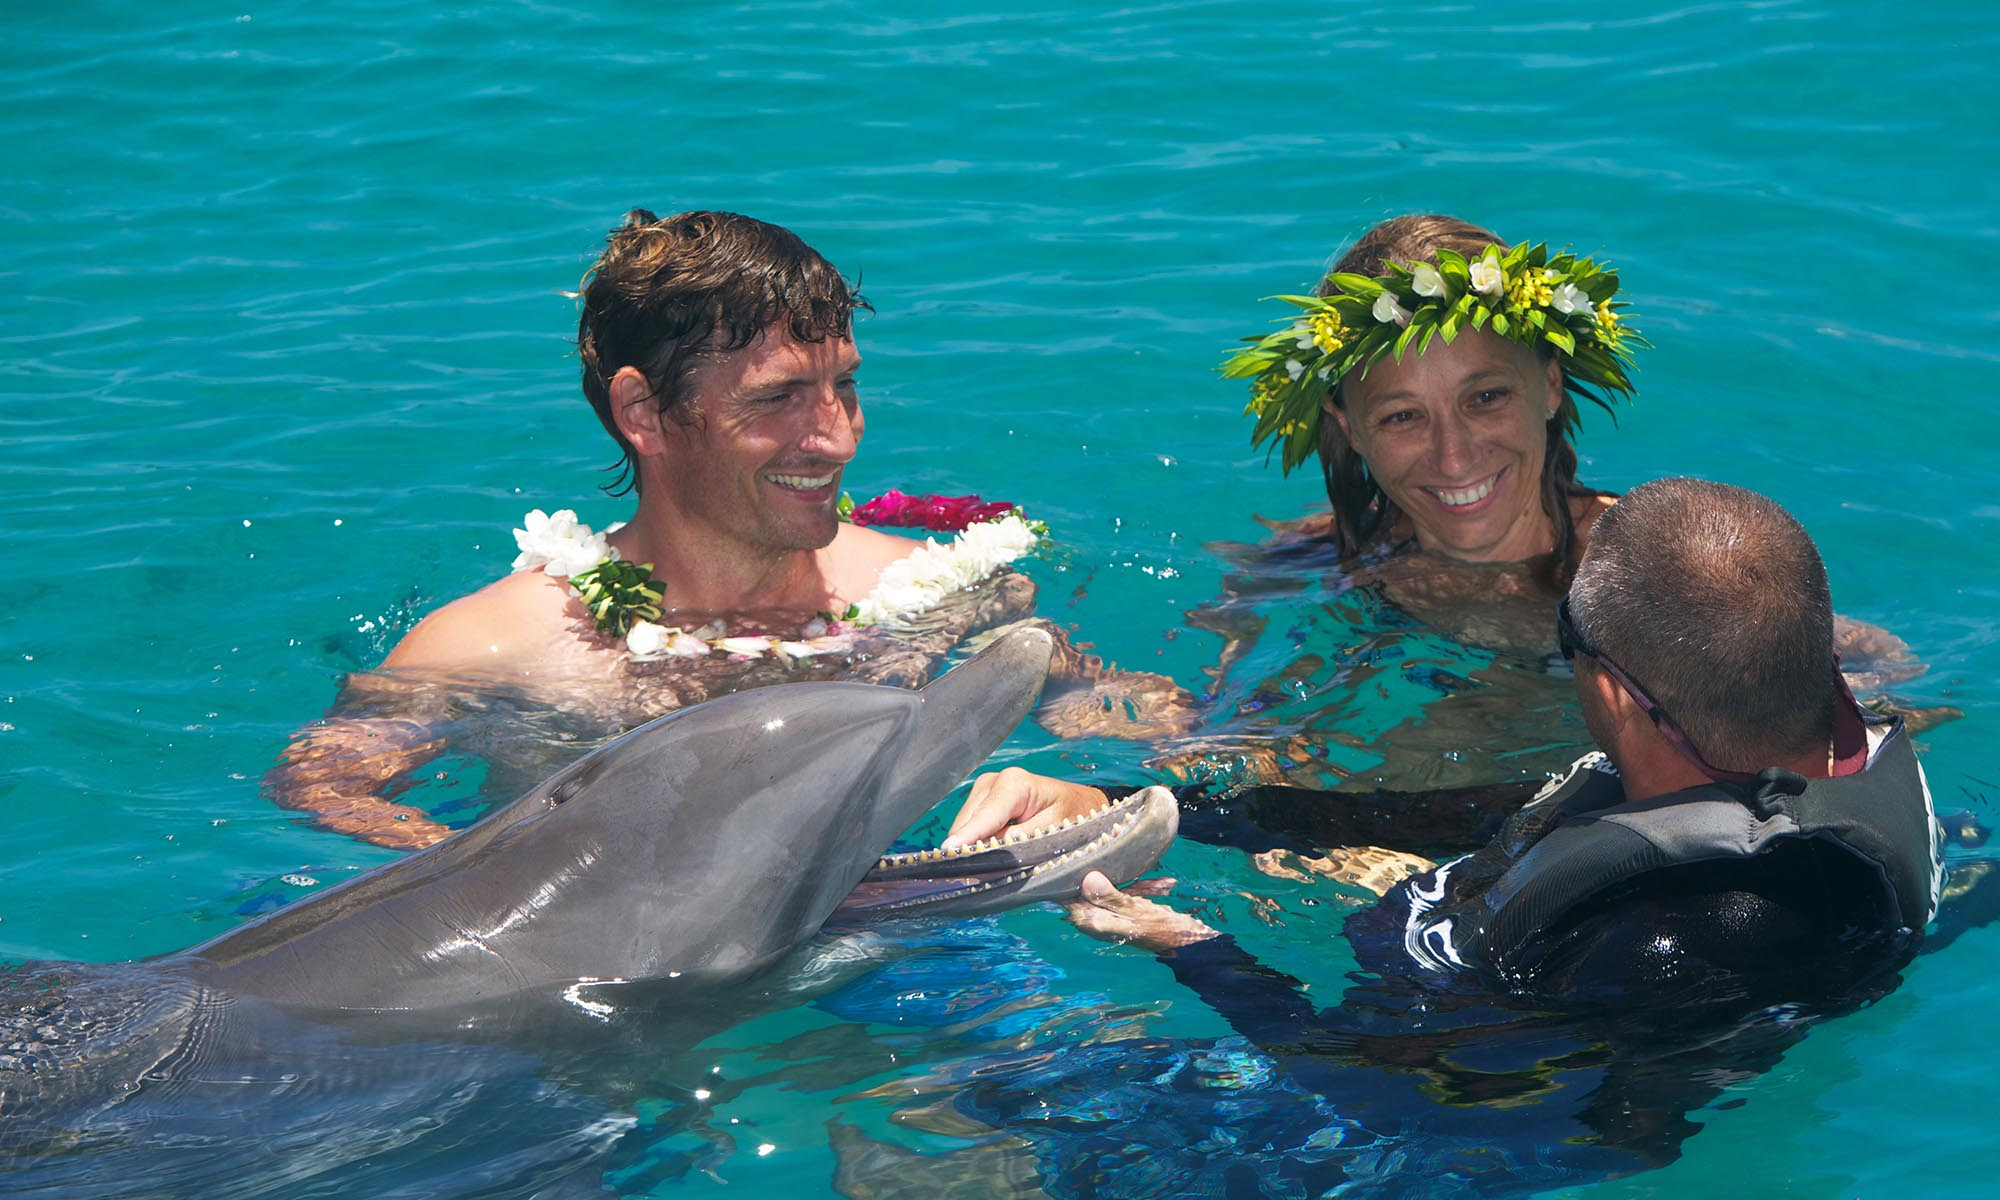 Moorea Dolphin Center, 'Moana' Swimming with Dolphins Experience